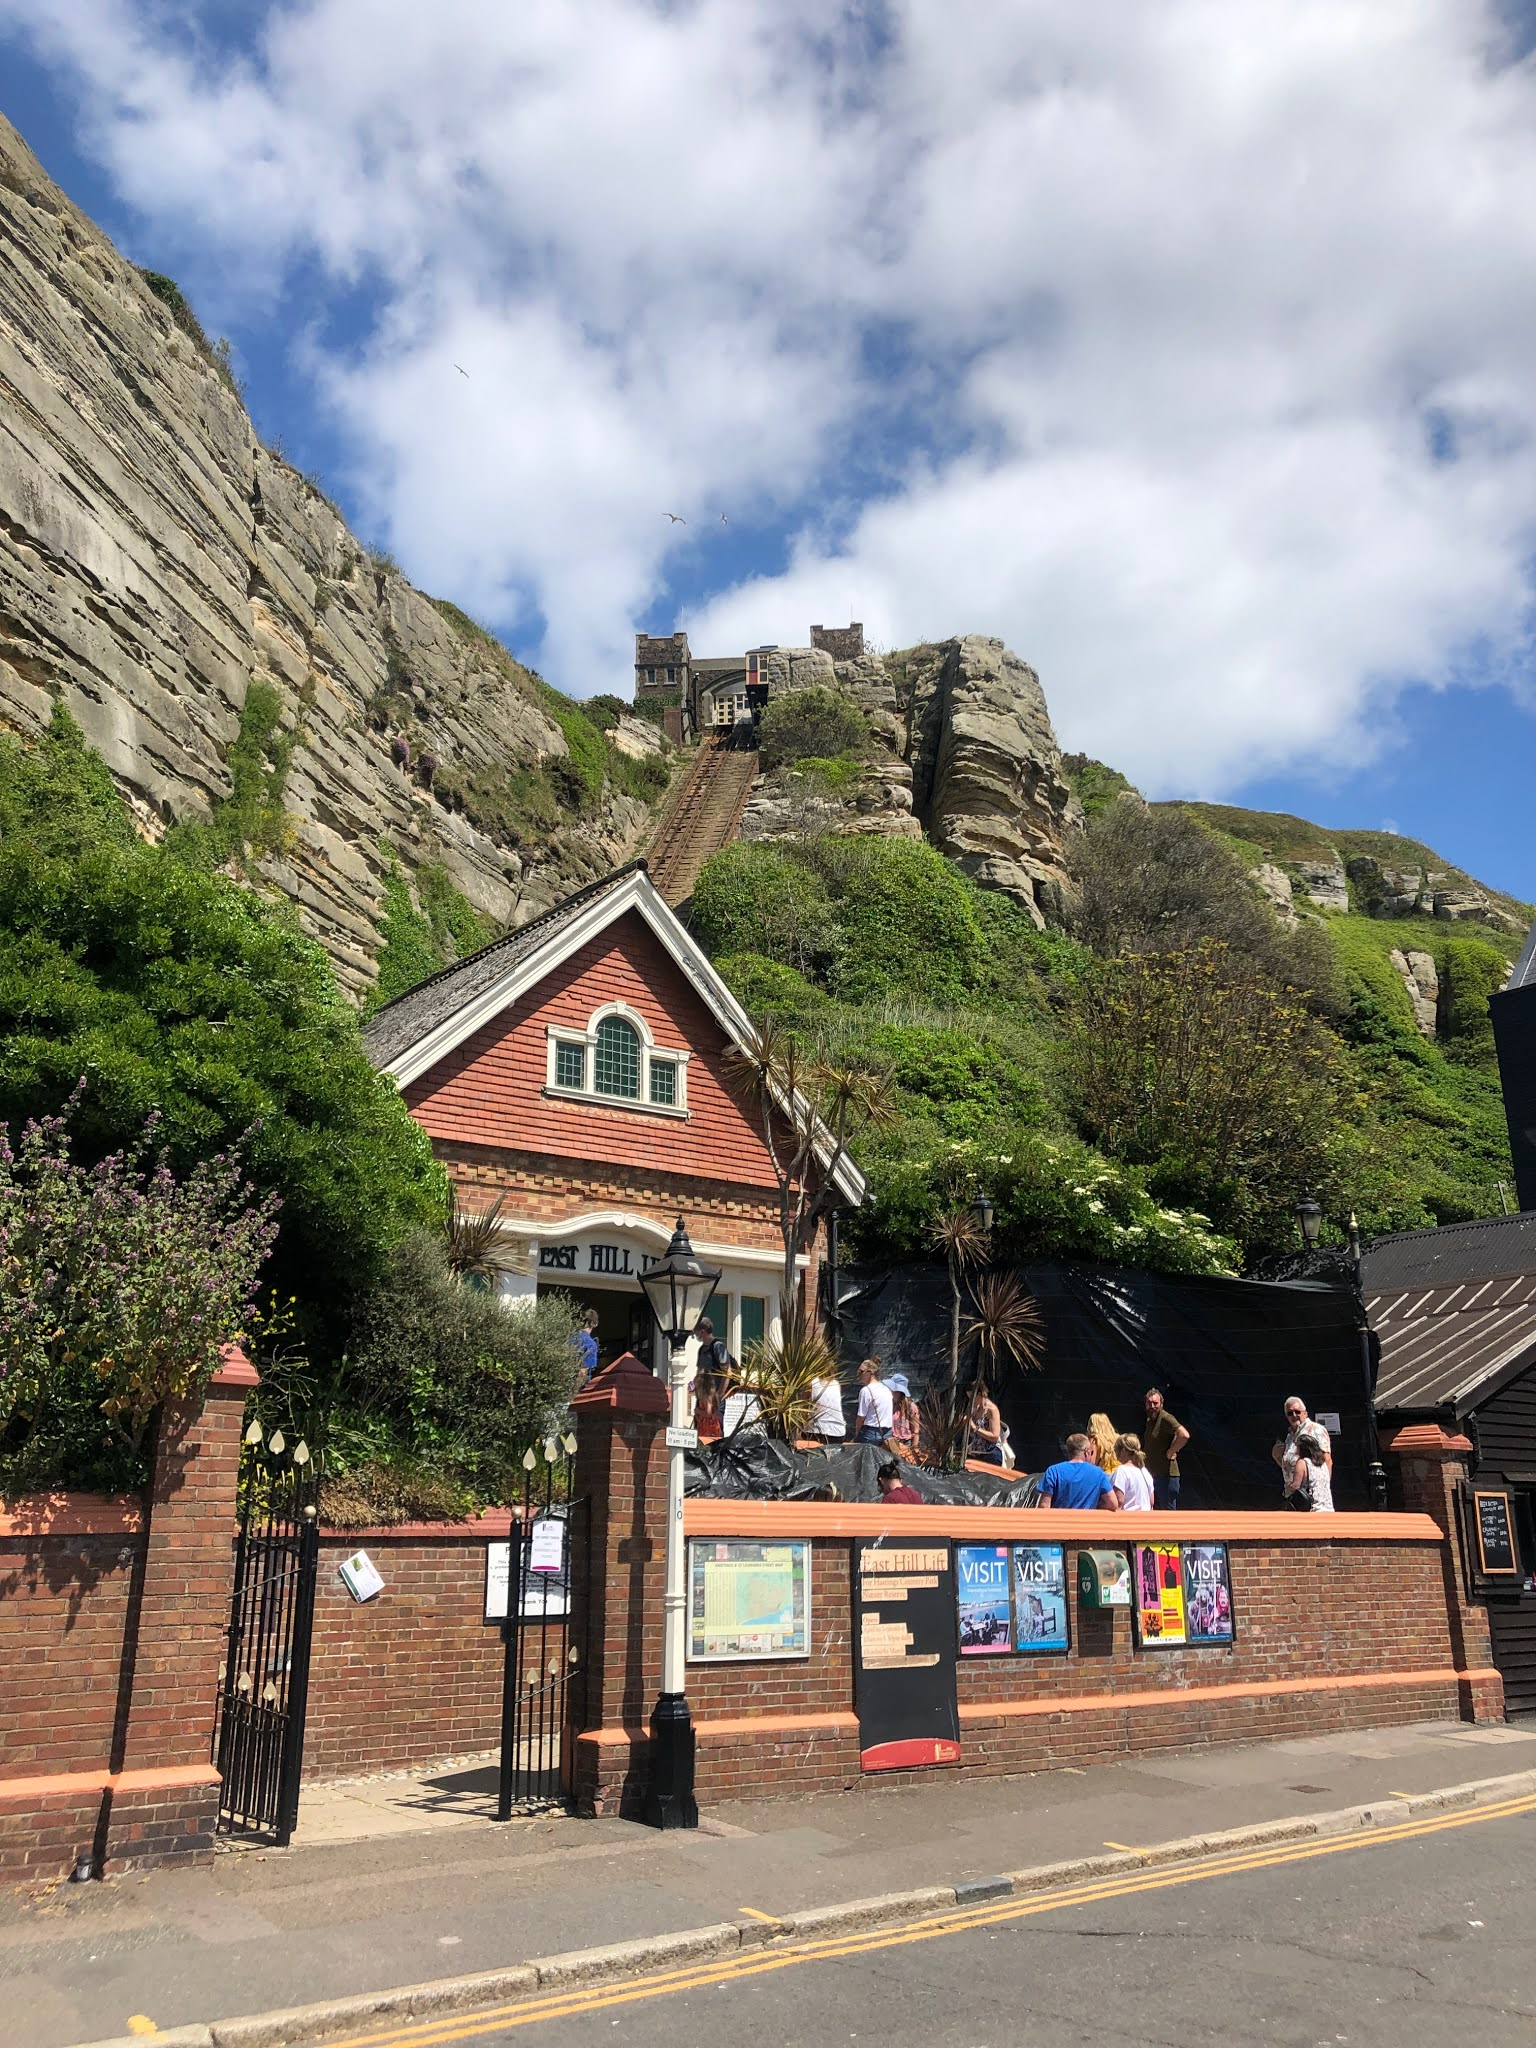 the hill lift in Hastings